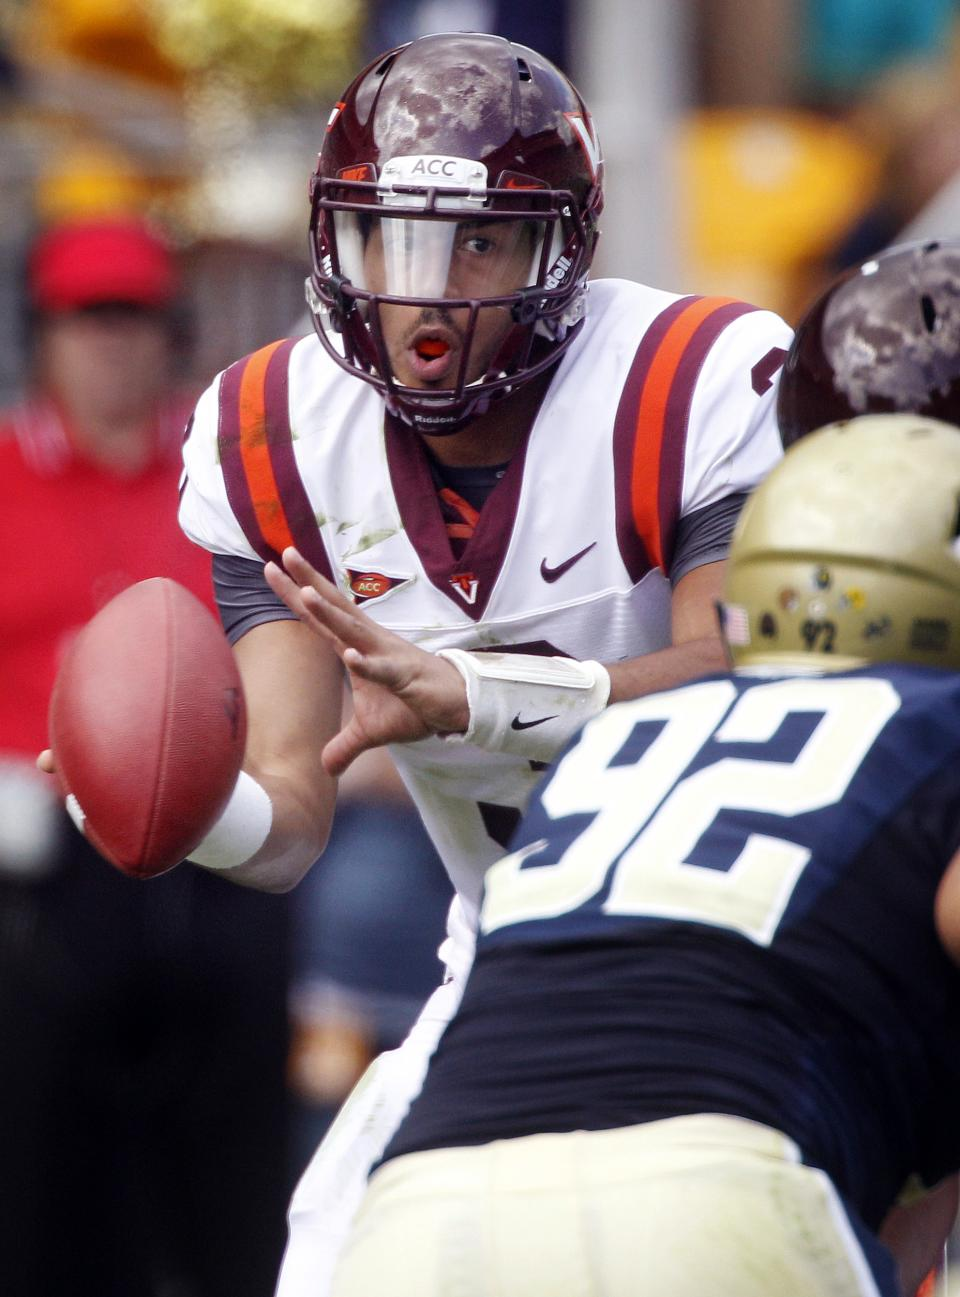 Virginia Tech quarterback Logan Thomas , left, looks to pass as he is pressured by Pittsburgh defensive lineman Bryan Murphy (93) in the second quarter of an NCAA college football game, Saturday, Sept. 15, 2012 in Pittsburgh. (AP Photo/Keith Srakocic)